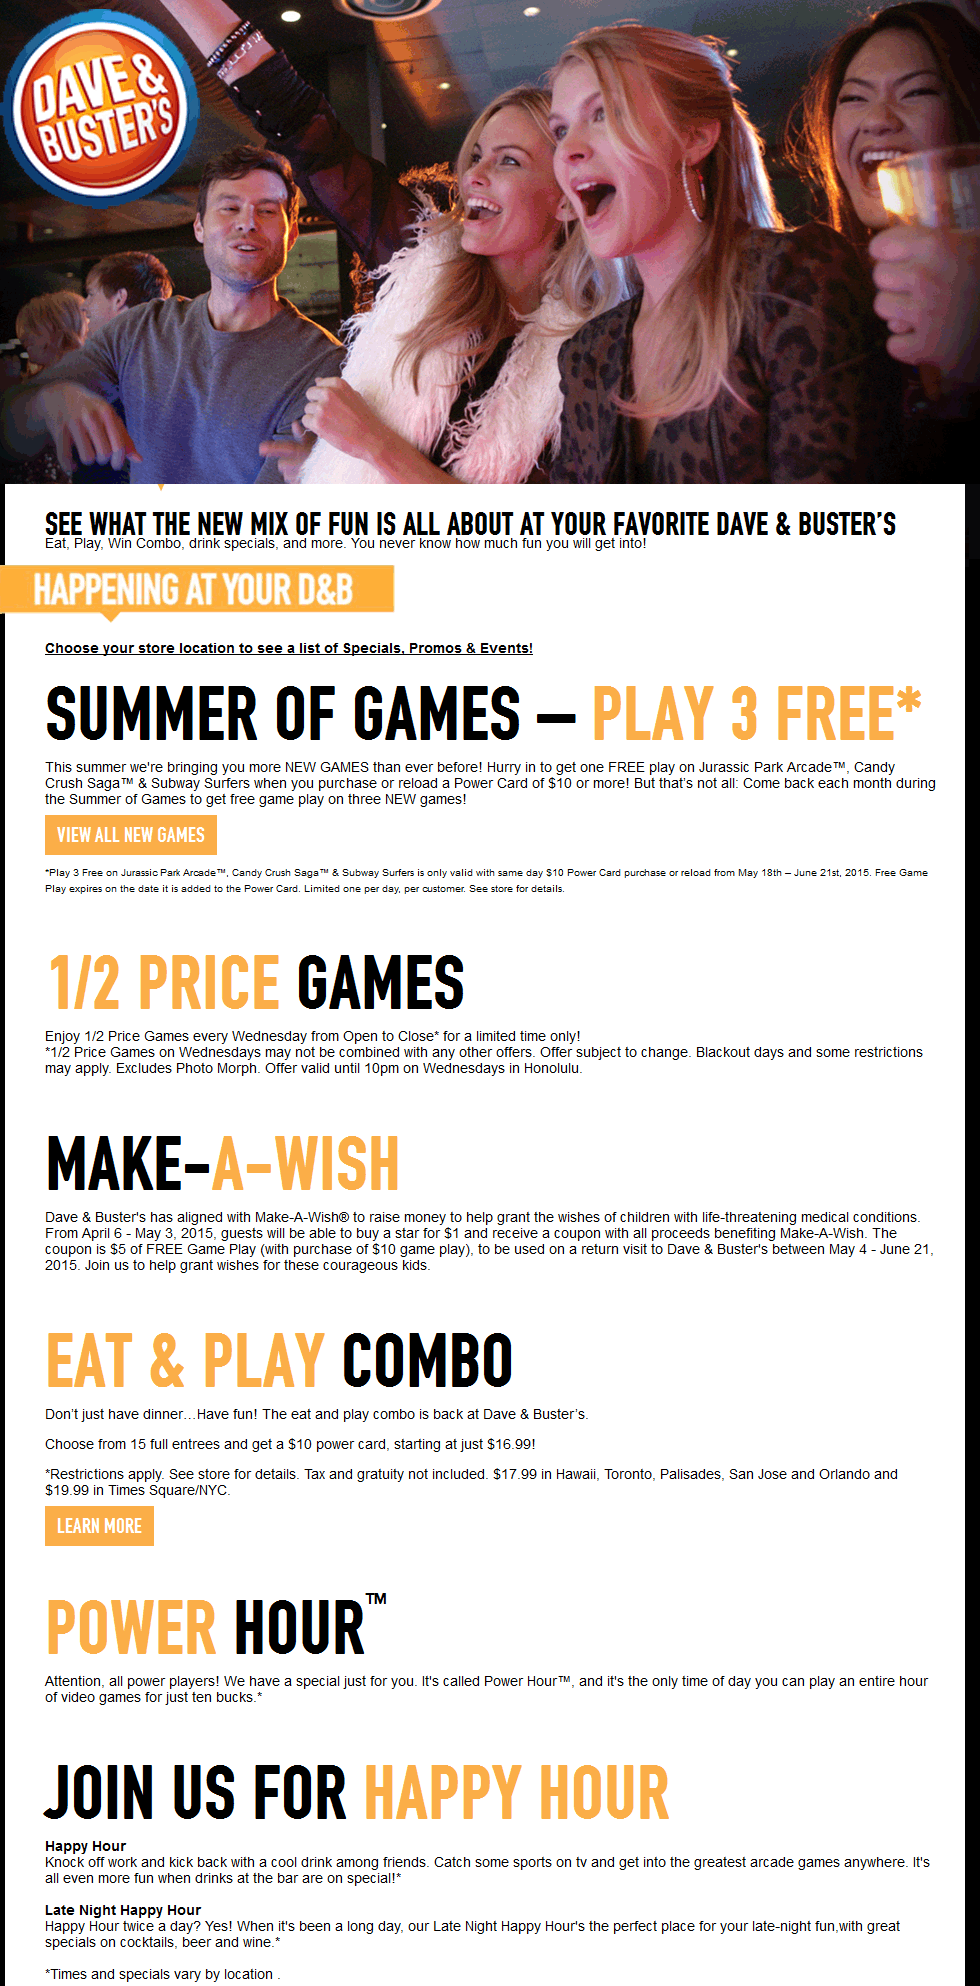 Dave & Busters Coupon February 2018 3 free games with your power card & more at Dave & Busters restaurants